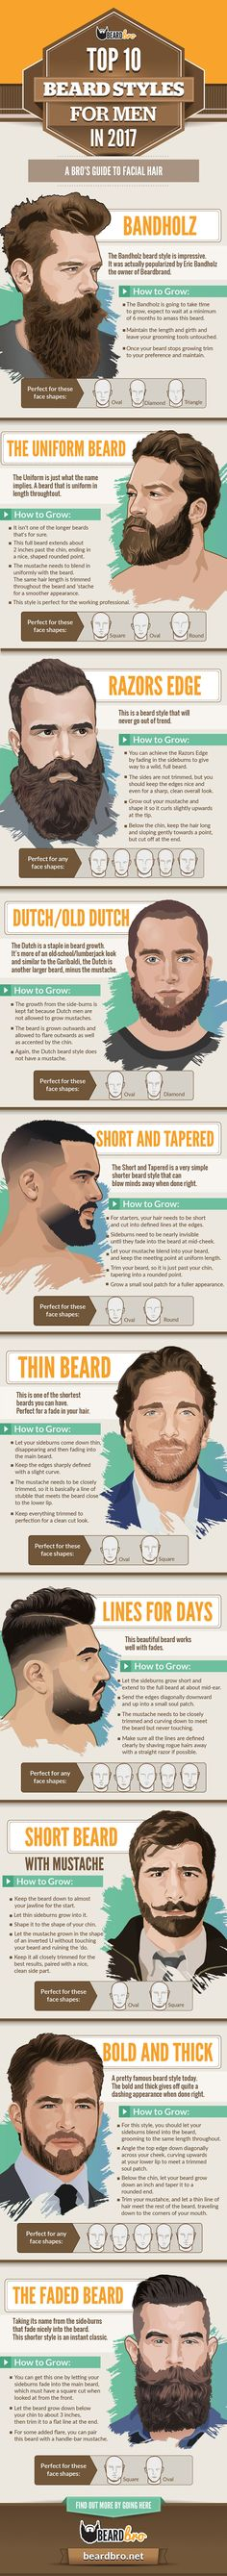 Growing a beard properly can take time and effort. If you are doing it, you may as well check out the top styles to see which one suits you. This infographic from Beard Bro might help you decide which facial hair style to go with: